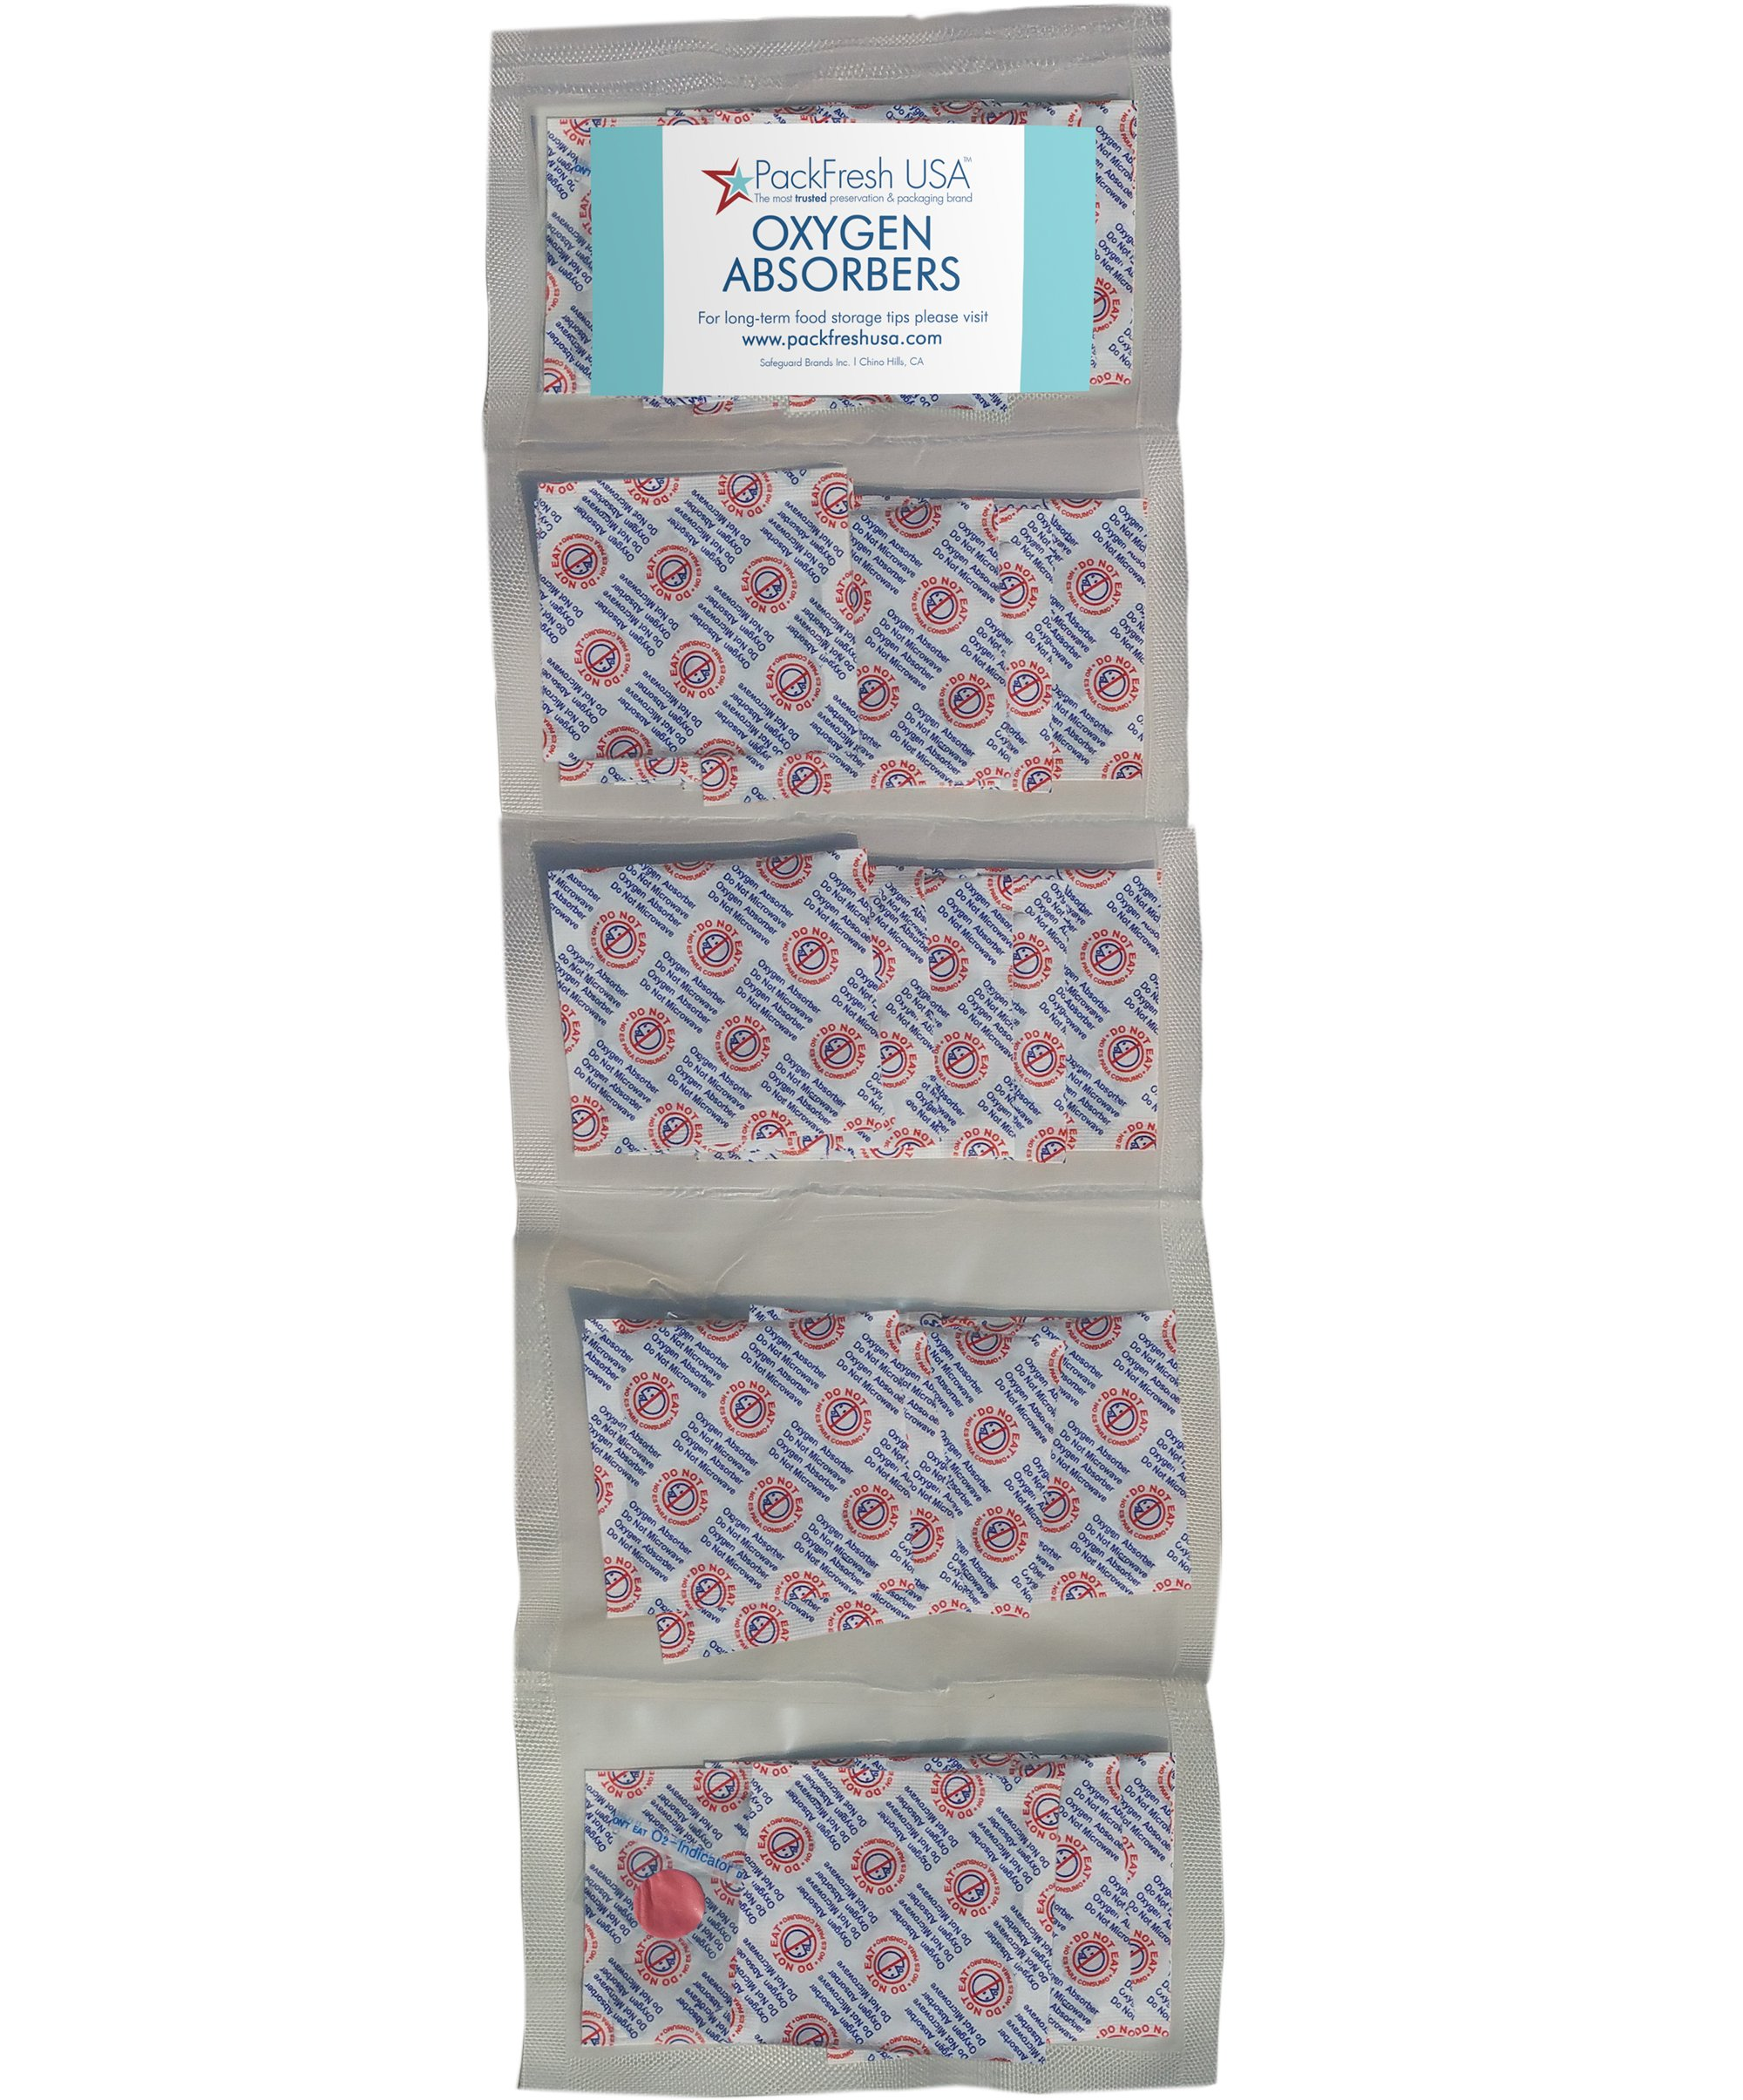 300cc Oxygen Absorber Compartment Packs (25, in 5 Compartments) with PackFreshUSA LTFS Guide